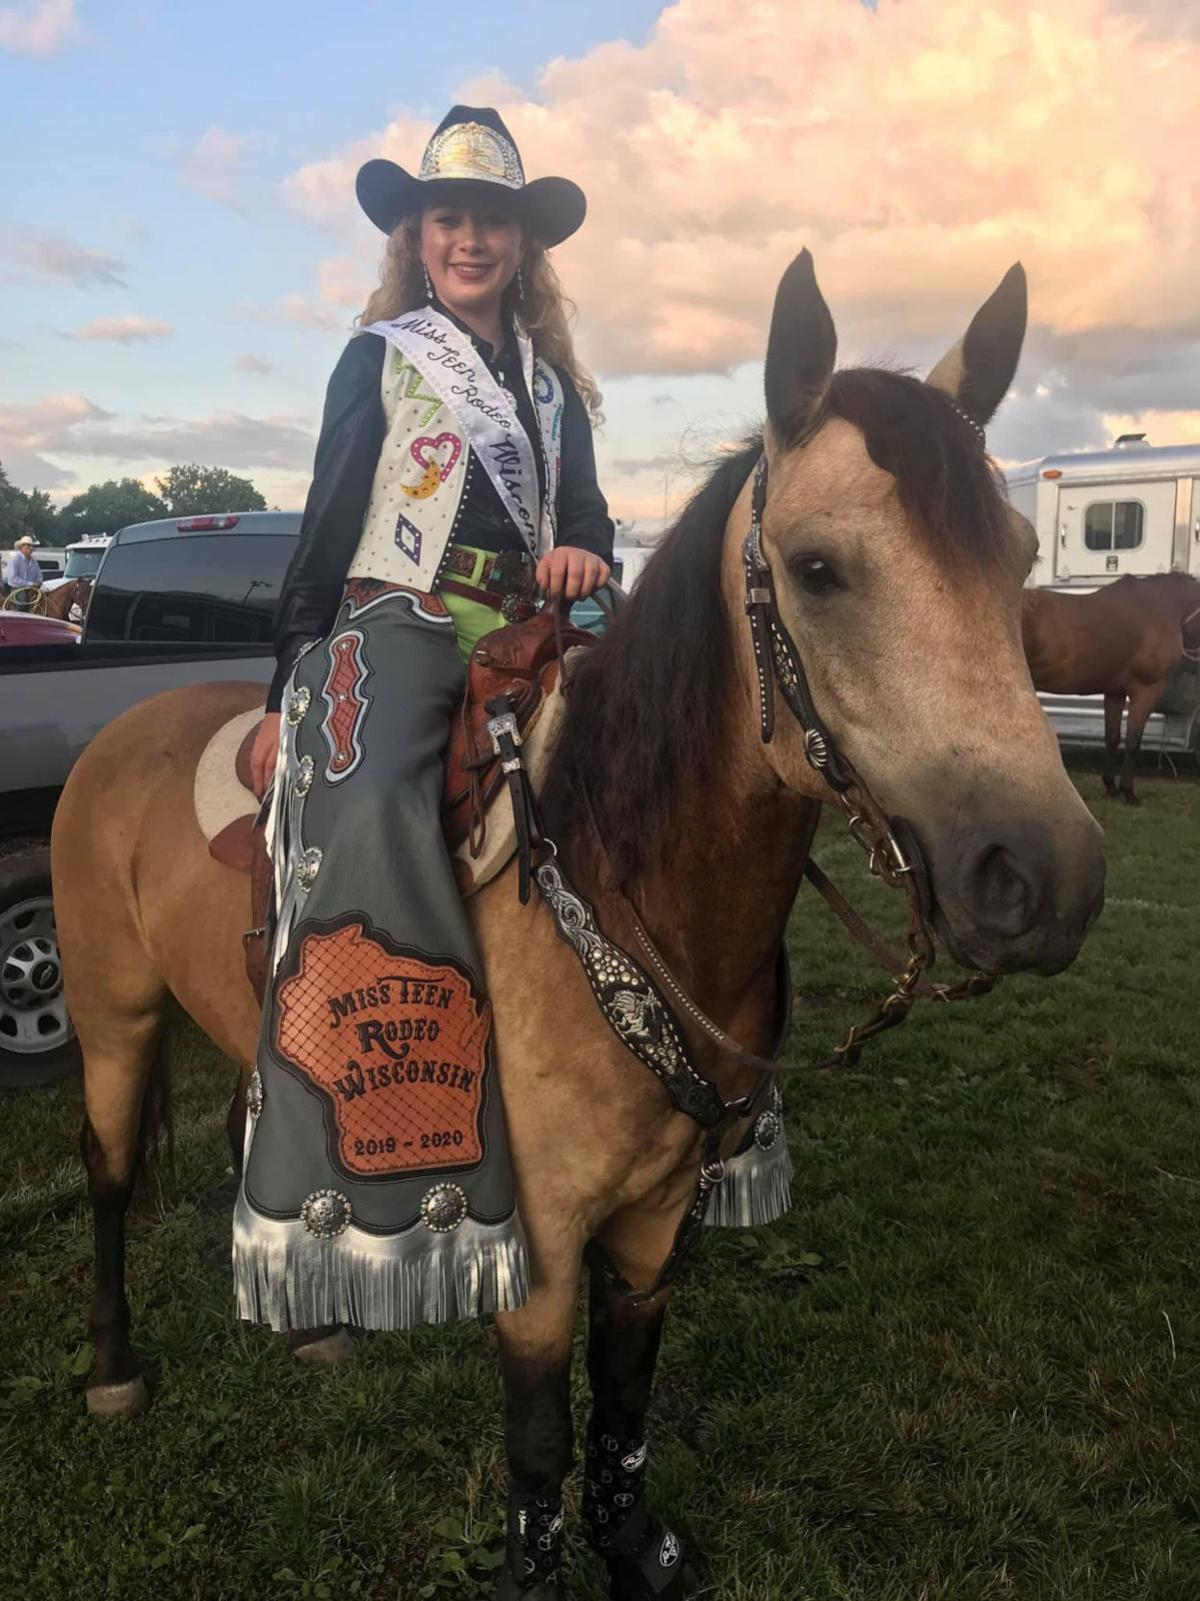 Miss Teen Rodeo Wisconsin 1